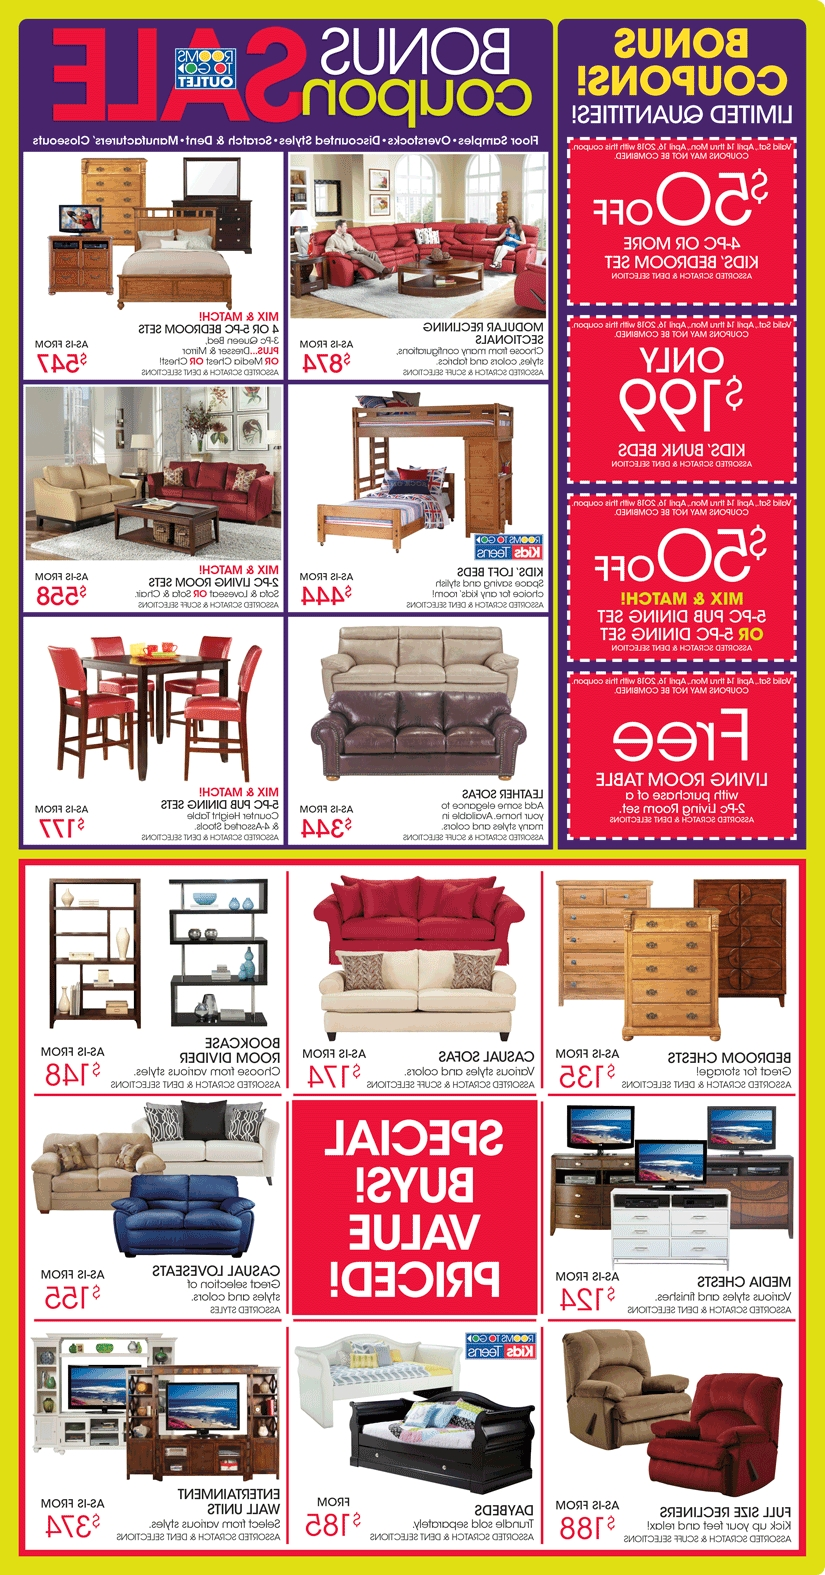 Newest Sectional Sofas In Savannah Ga With Rooms To Go Furniture Outlet Clearance – Warehouse Discounts (View 10 of 20)